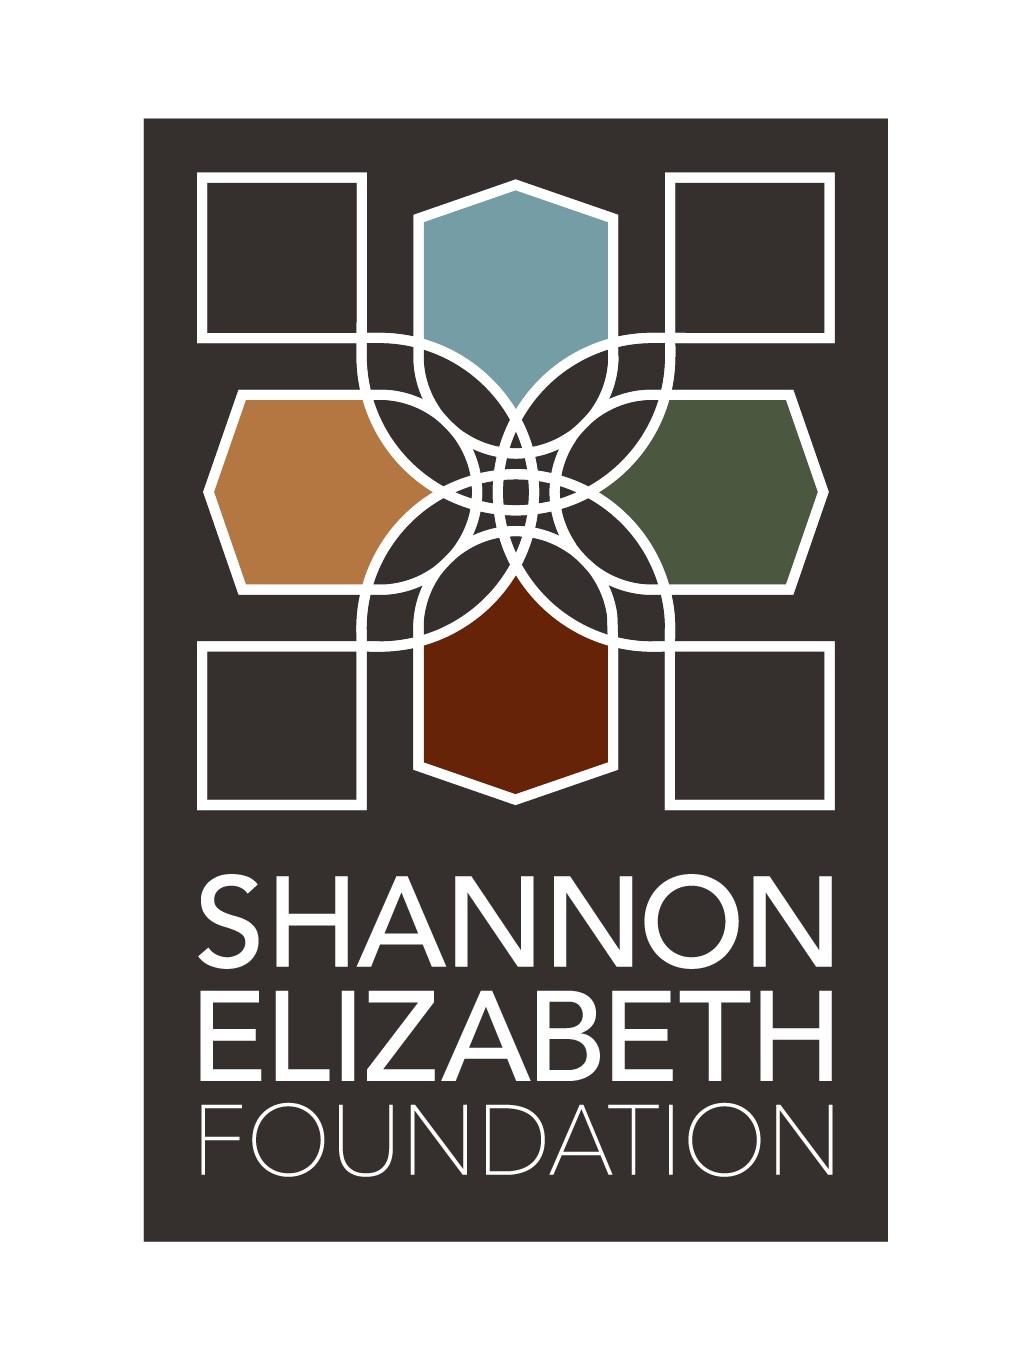 Shannon Elizabeth Foundation